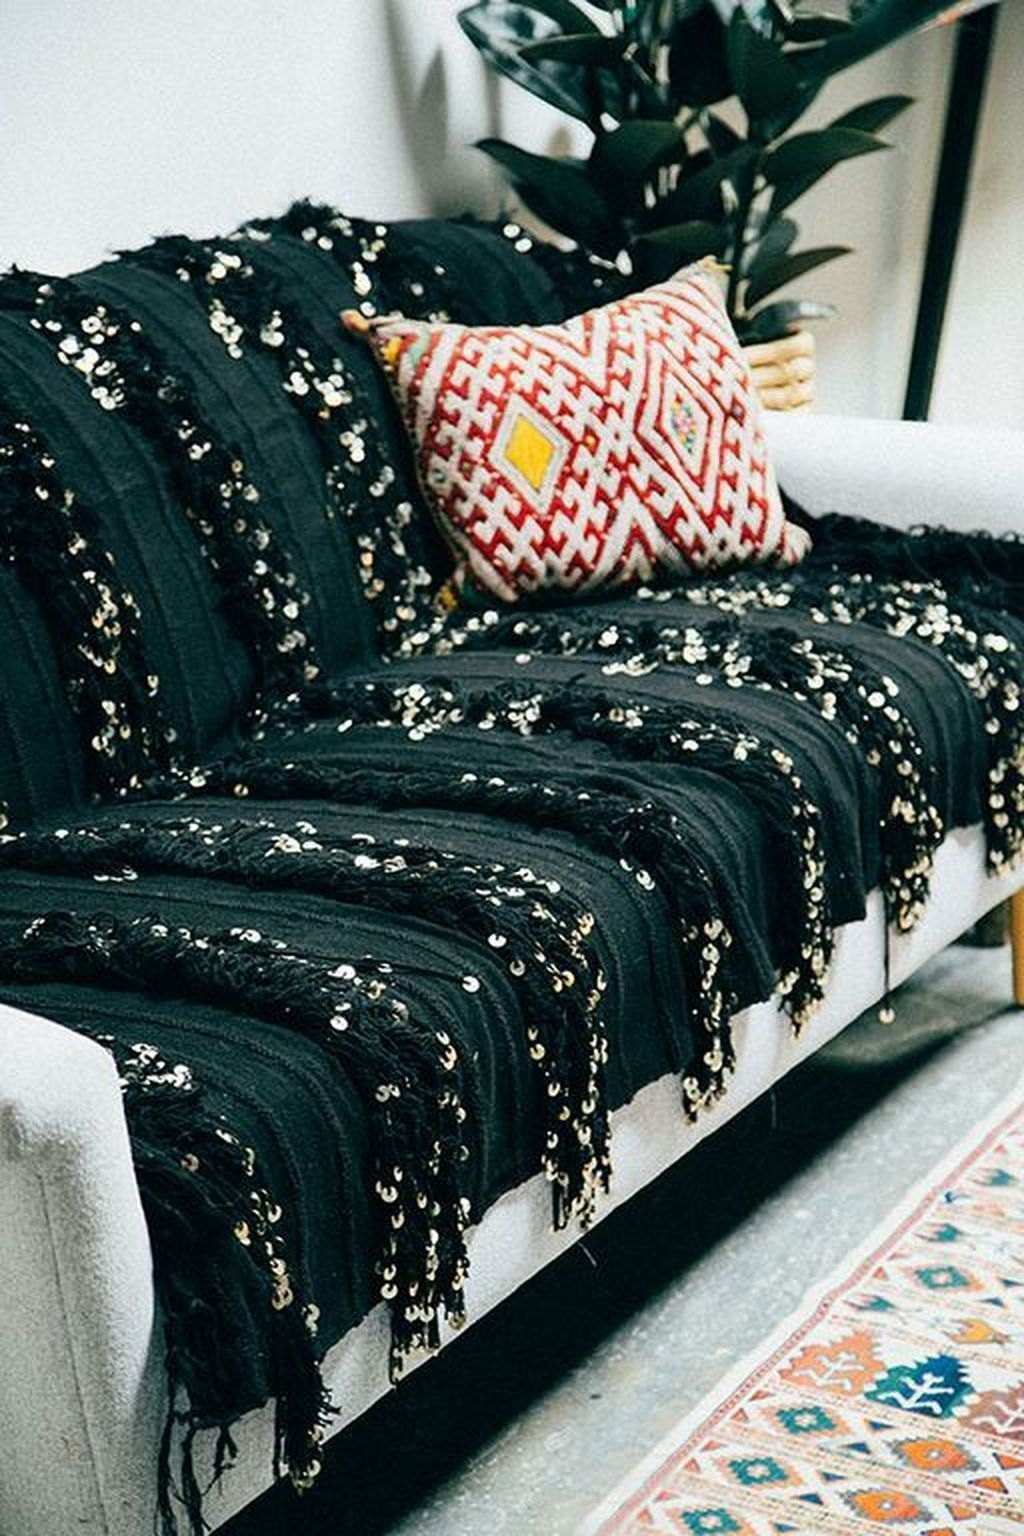 28 Remakable Bohemian Sofa Cover Designs Suitable For Living Room Livingroom Bohemian Sofacovers Bohemian Sofa Sofa Covers Home